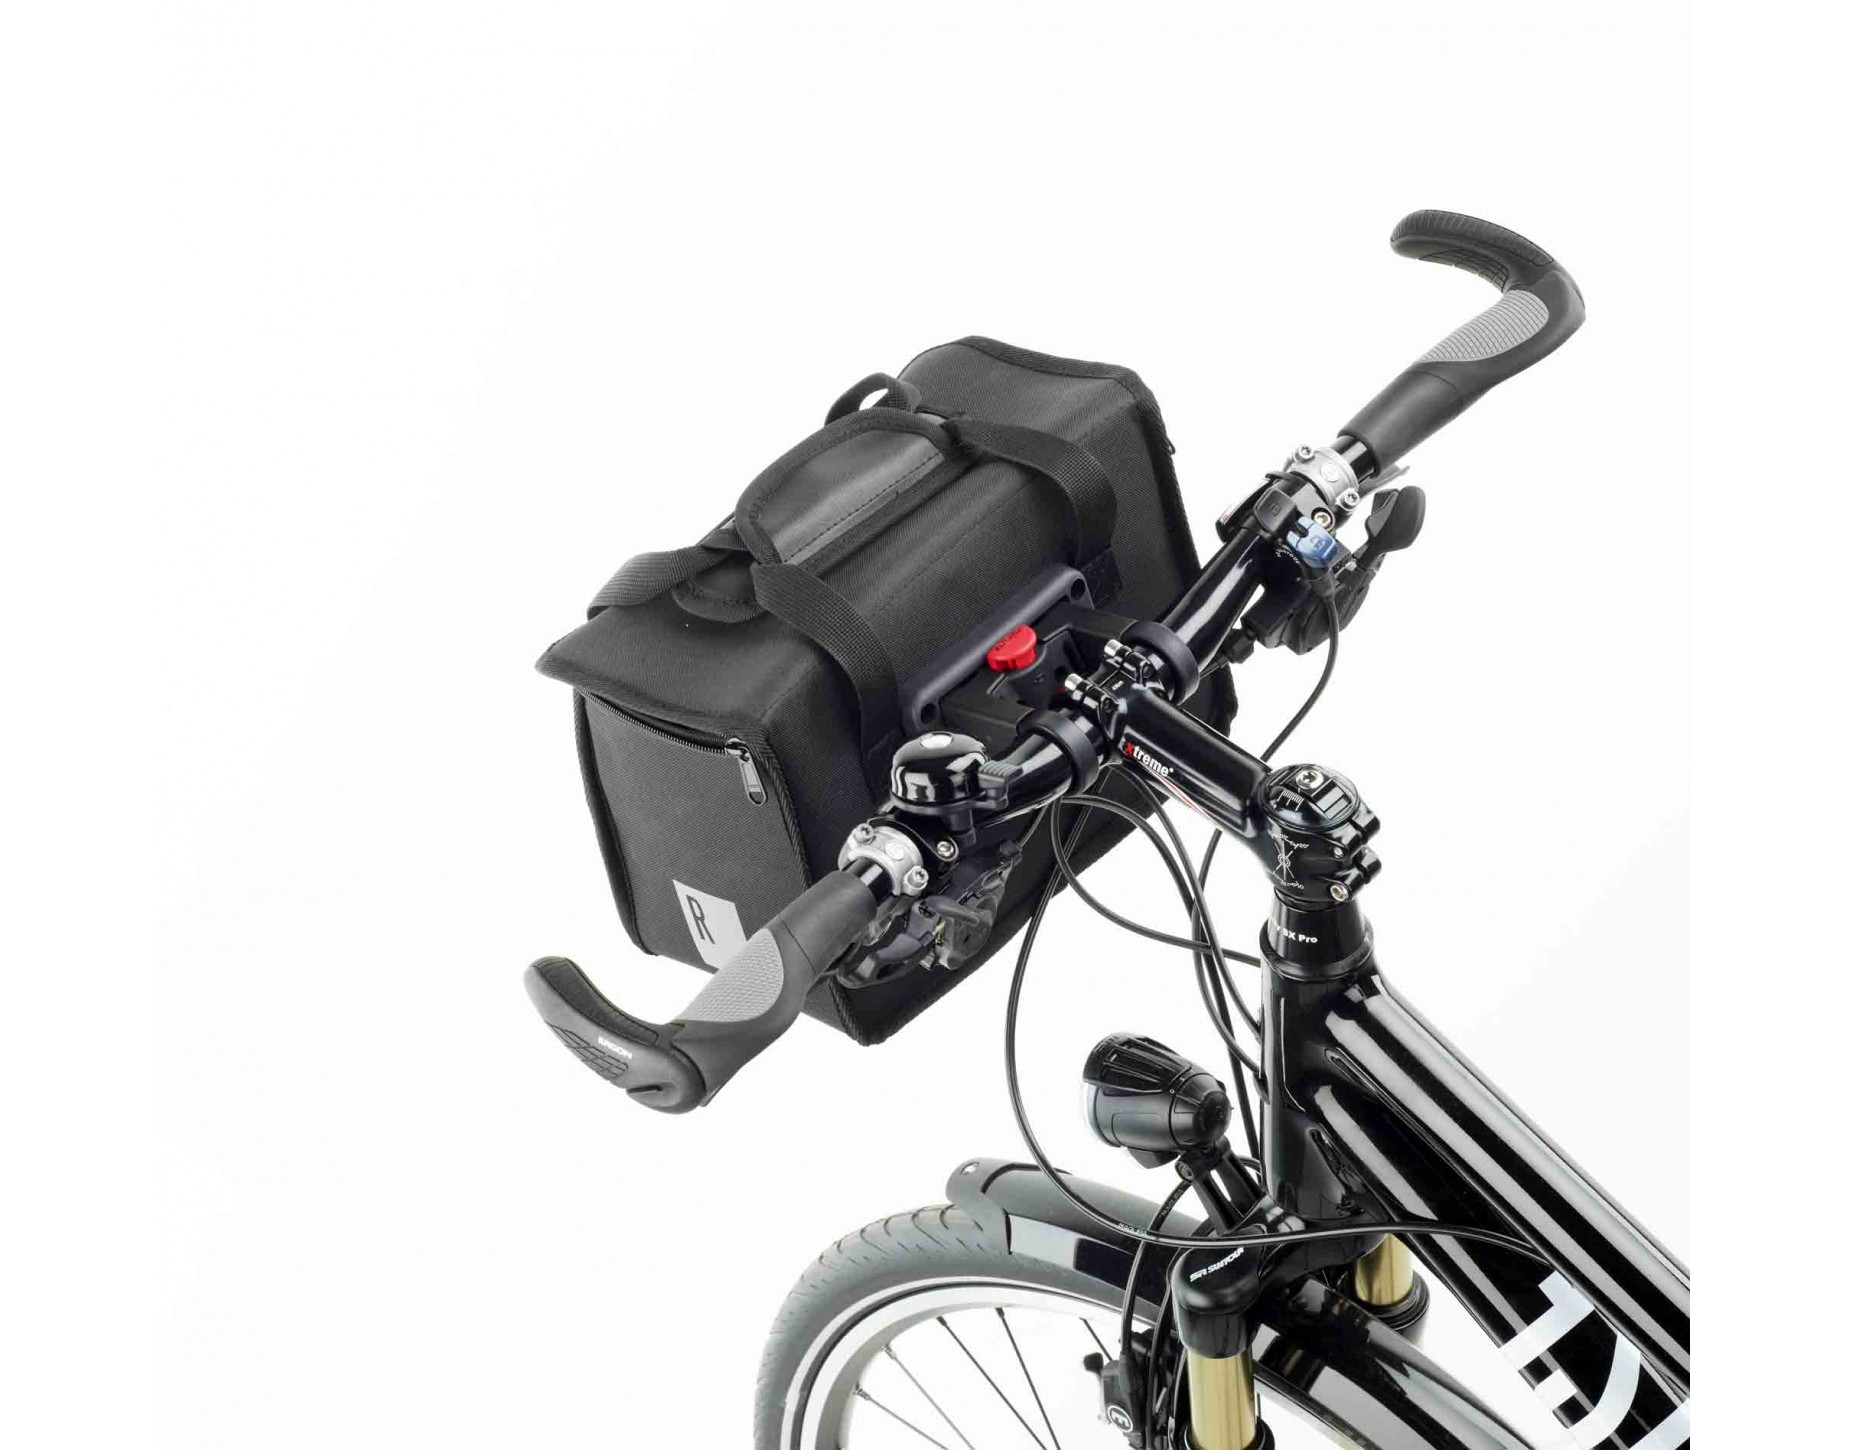 lenkertasche satteltasche f r fahrr der mountainbikes. Black Bedroom Furniture Sets. Home Design Ideas